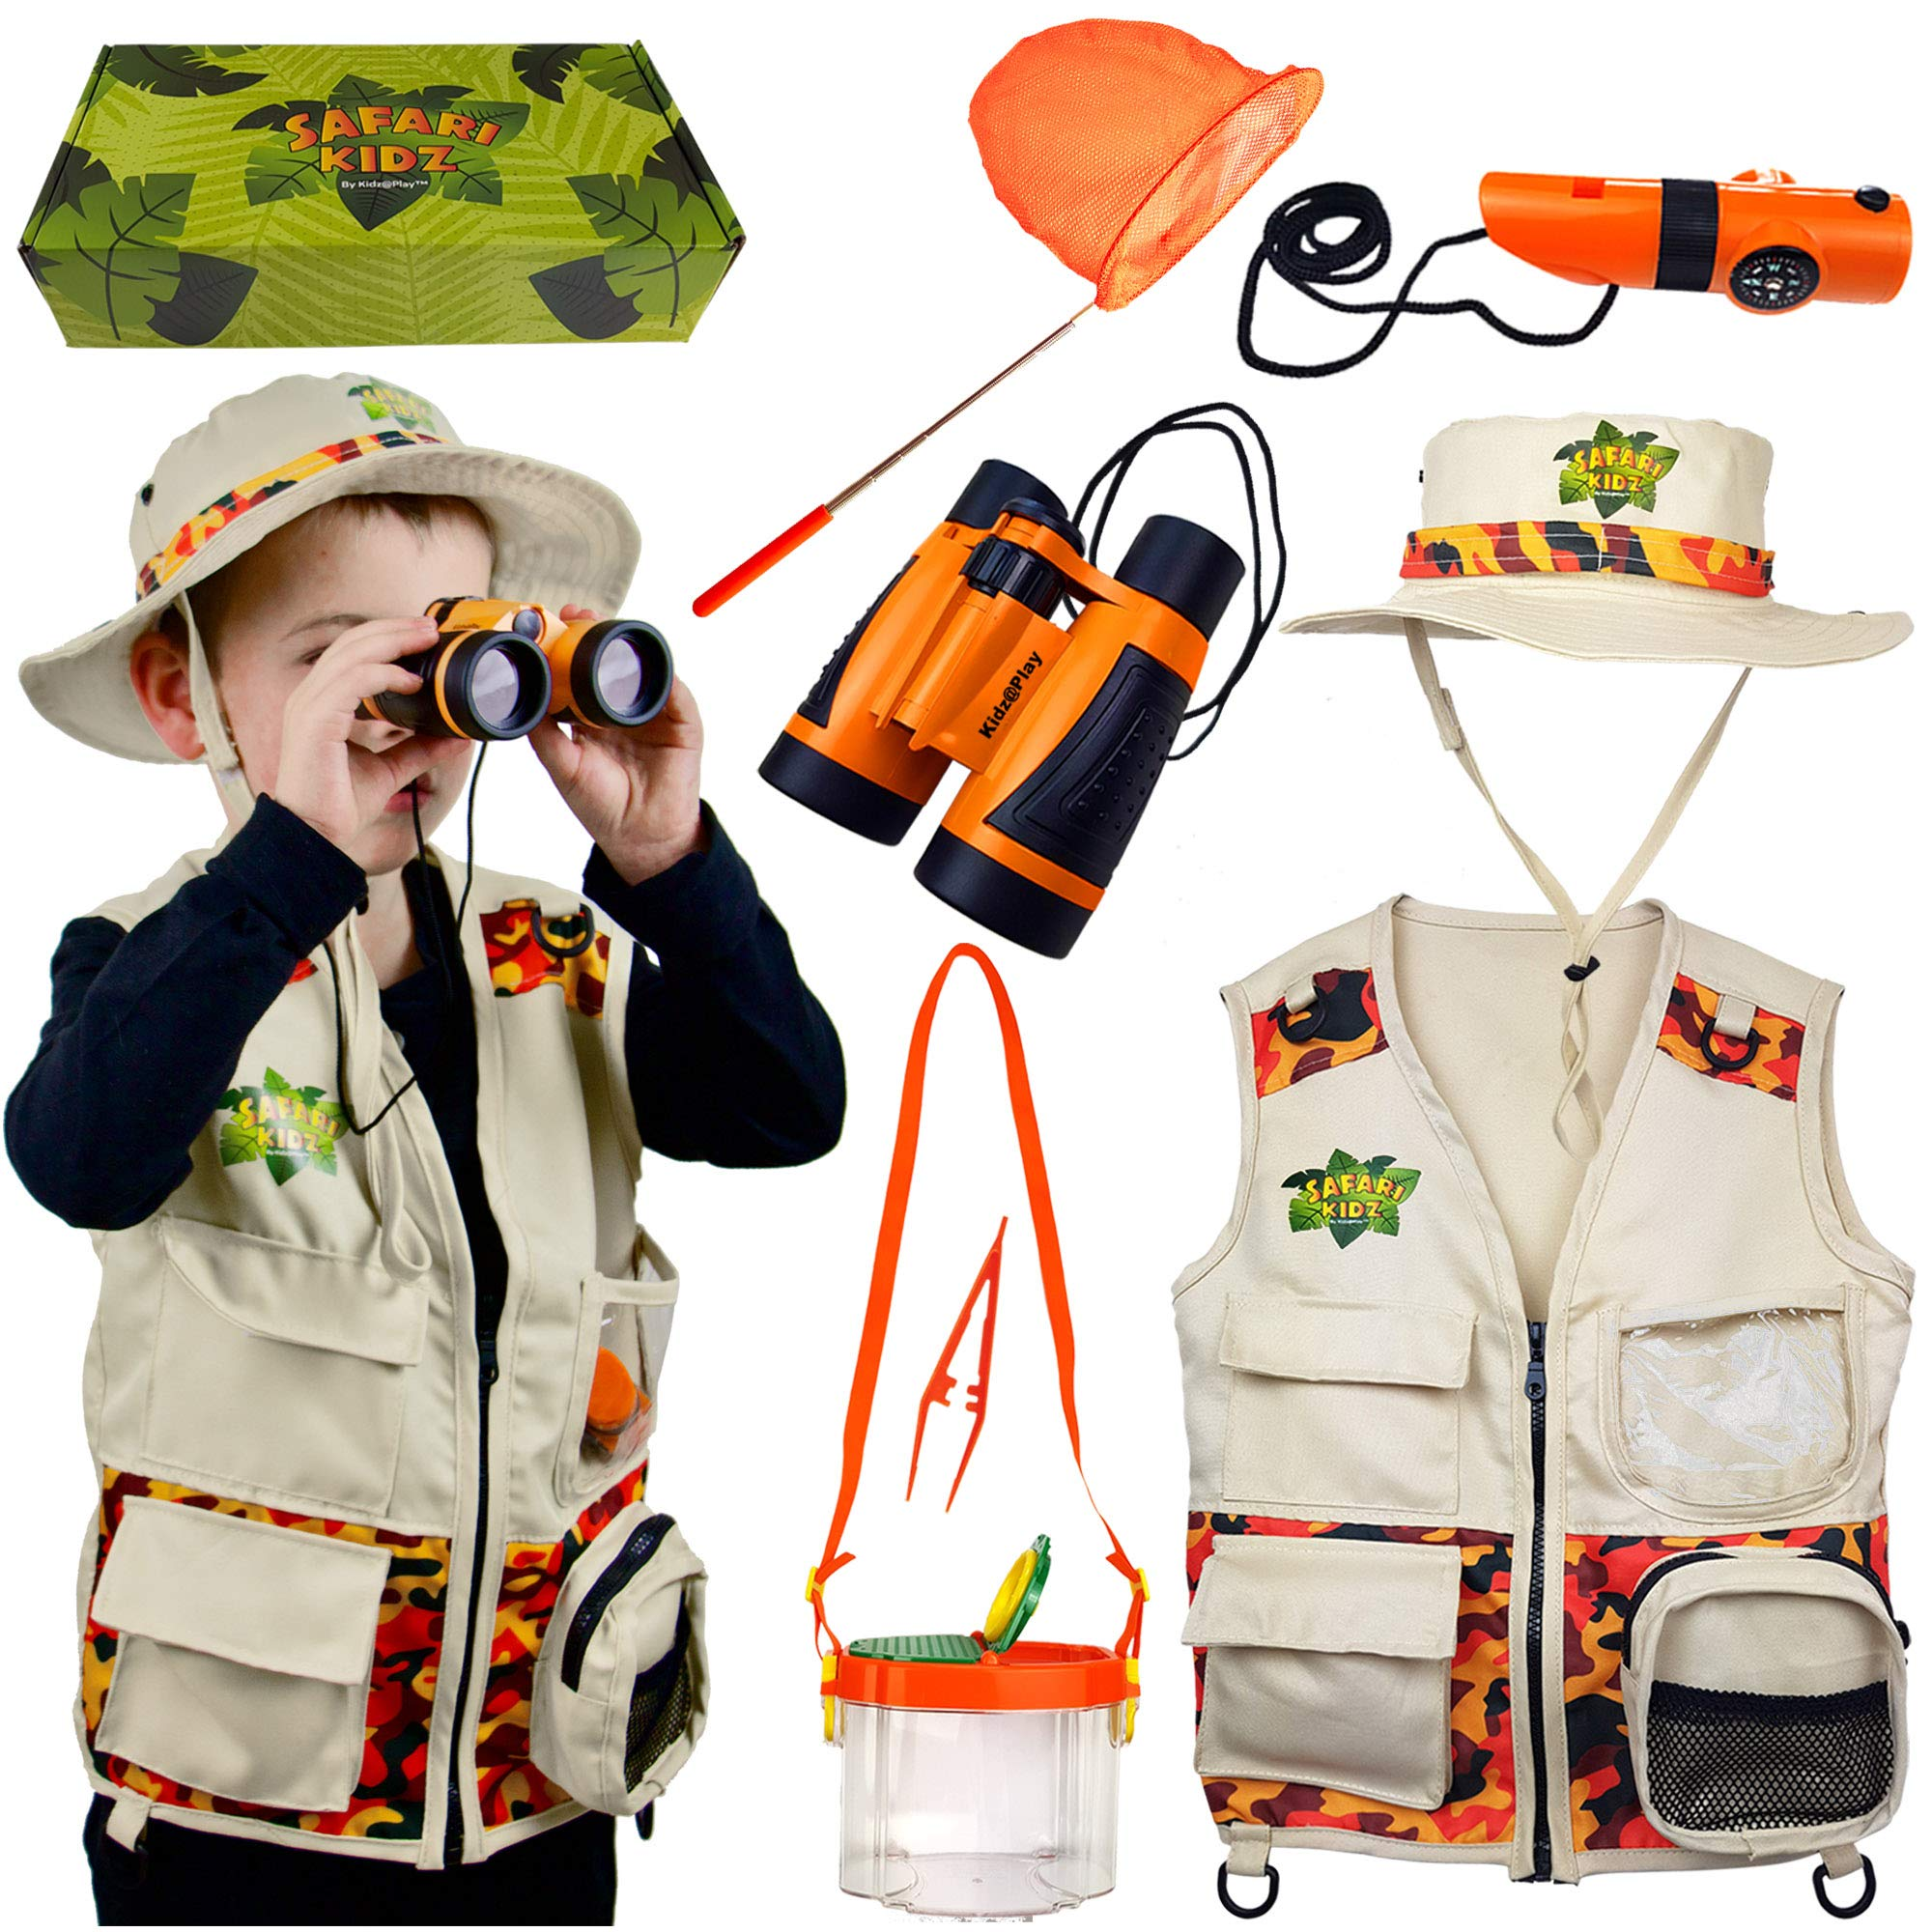 Safari Kidz Outdoor Adventure Set - Perfect Safari, Critter Hunting, Exploration Costume with Vest, Hat, Binoculars, Bug Net and Container, Whistle, Flashlight, Magnifying Glass